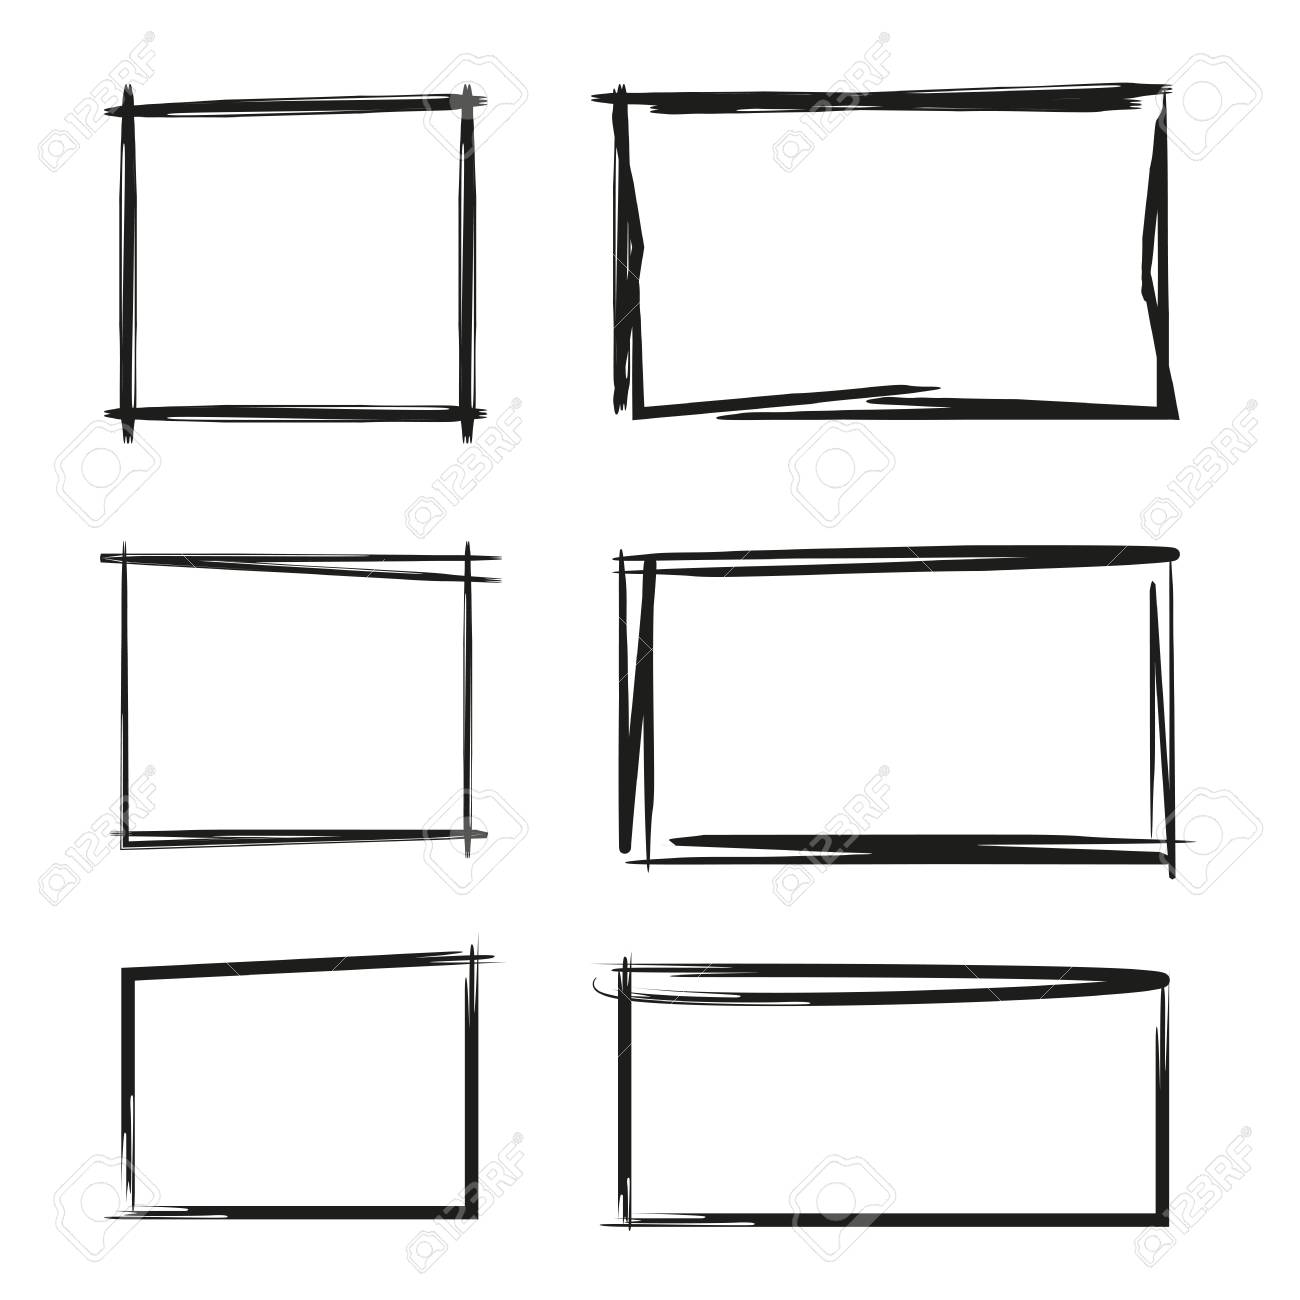 hand drawn rectangle text box and frames royalty free cliparts